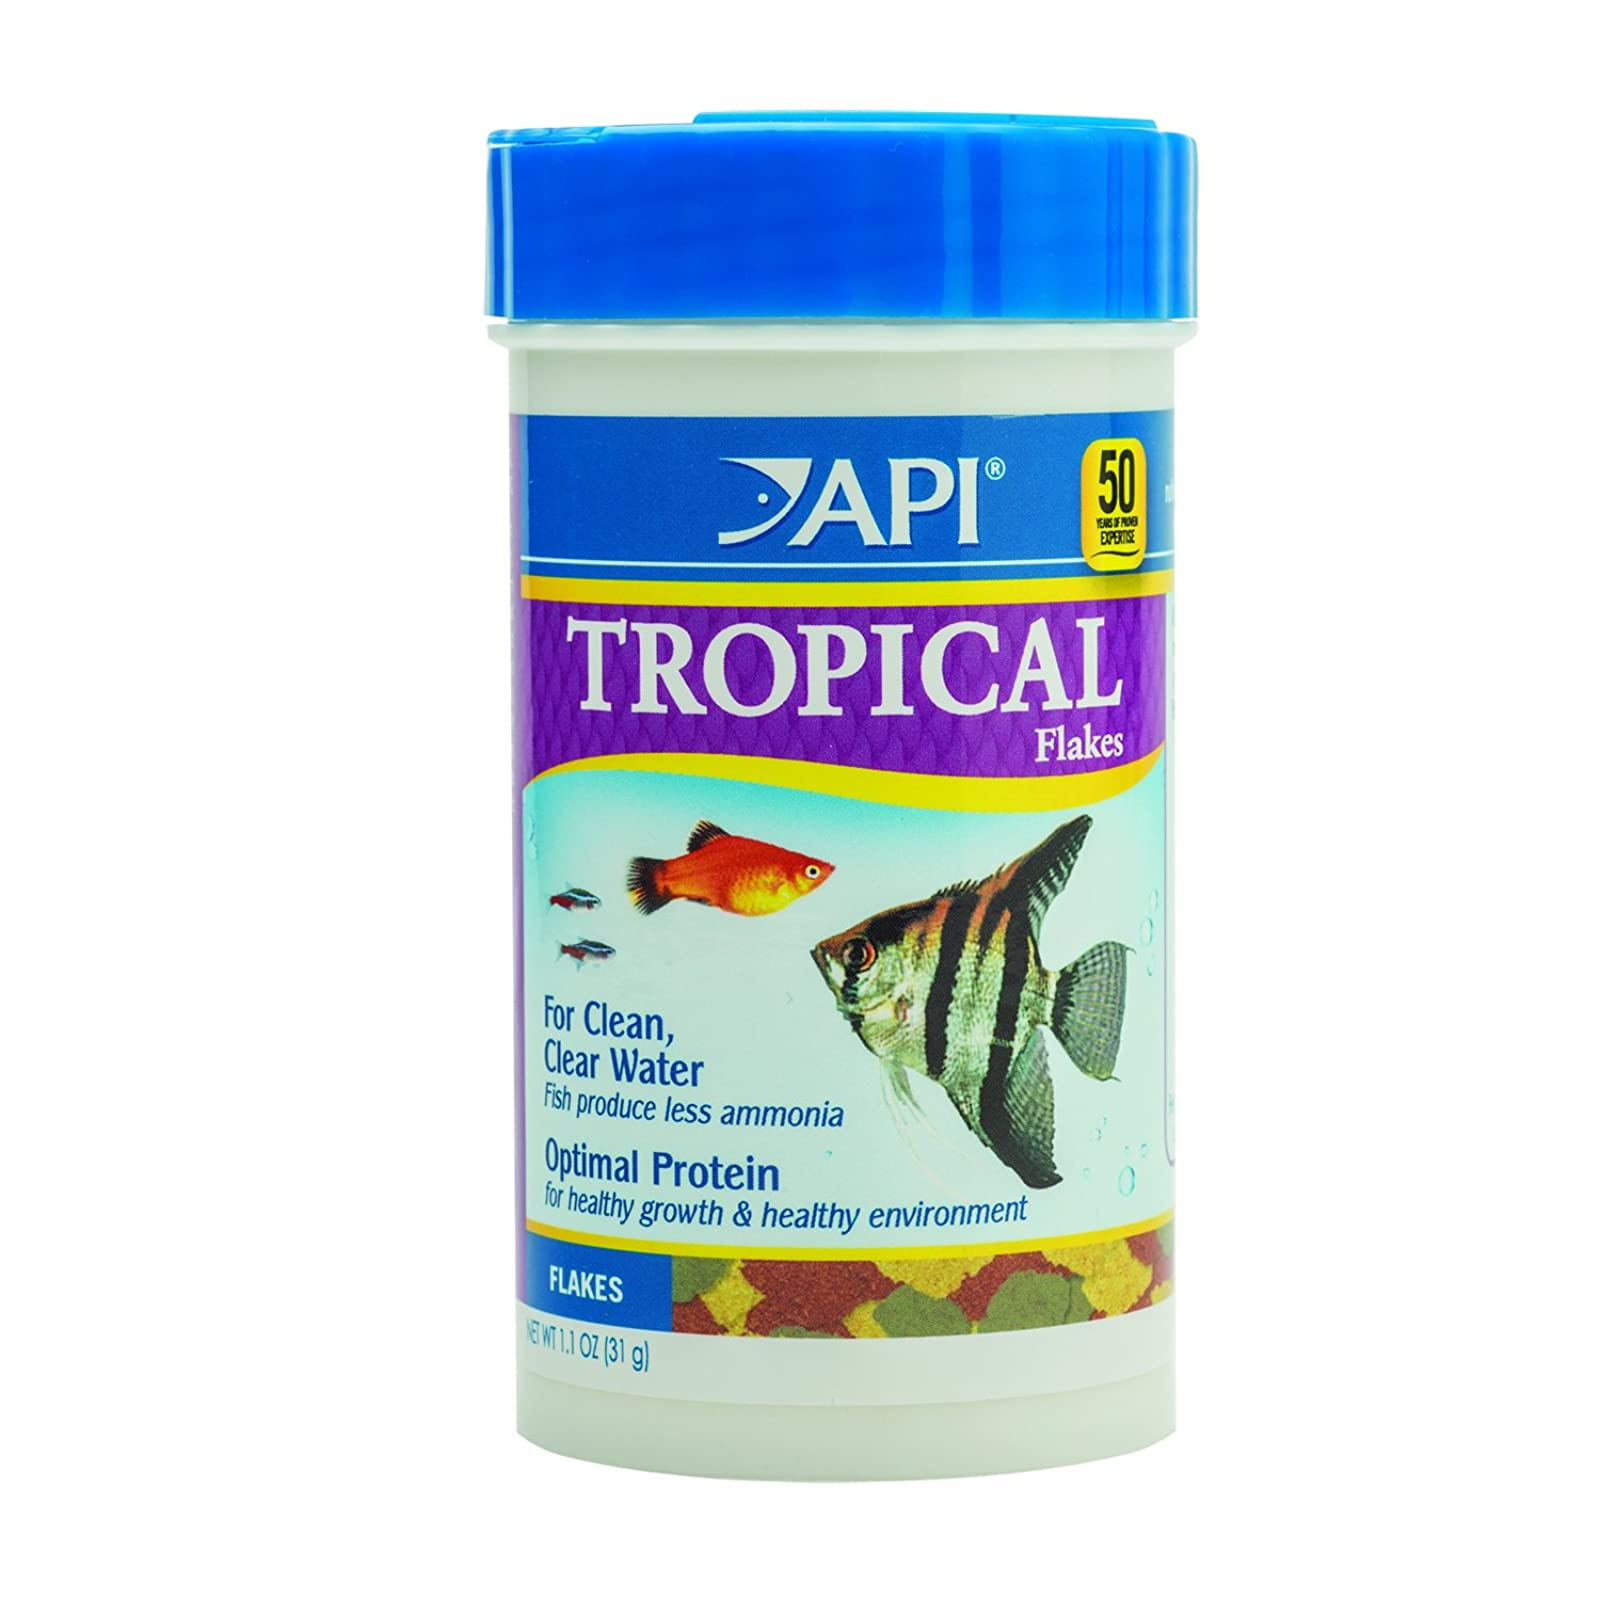 API TROPICAL FLAKES Fish Food 1.1-Ounce Container 820B - 1